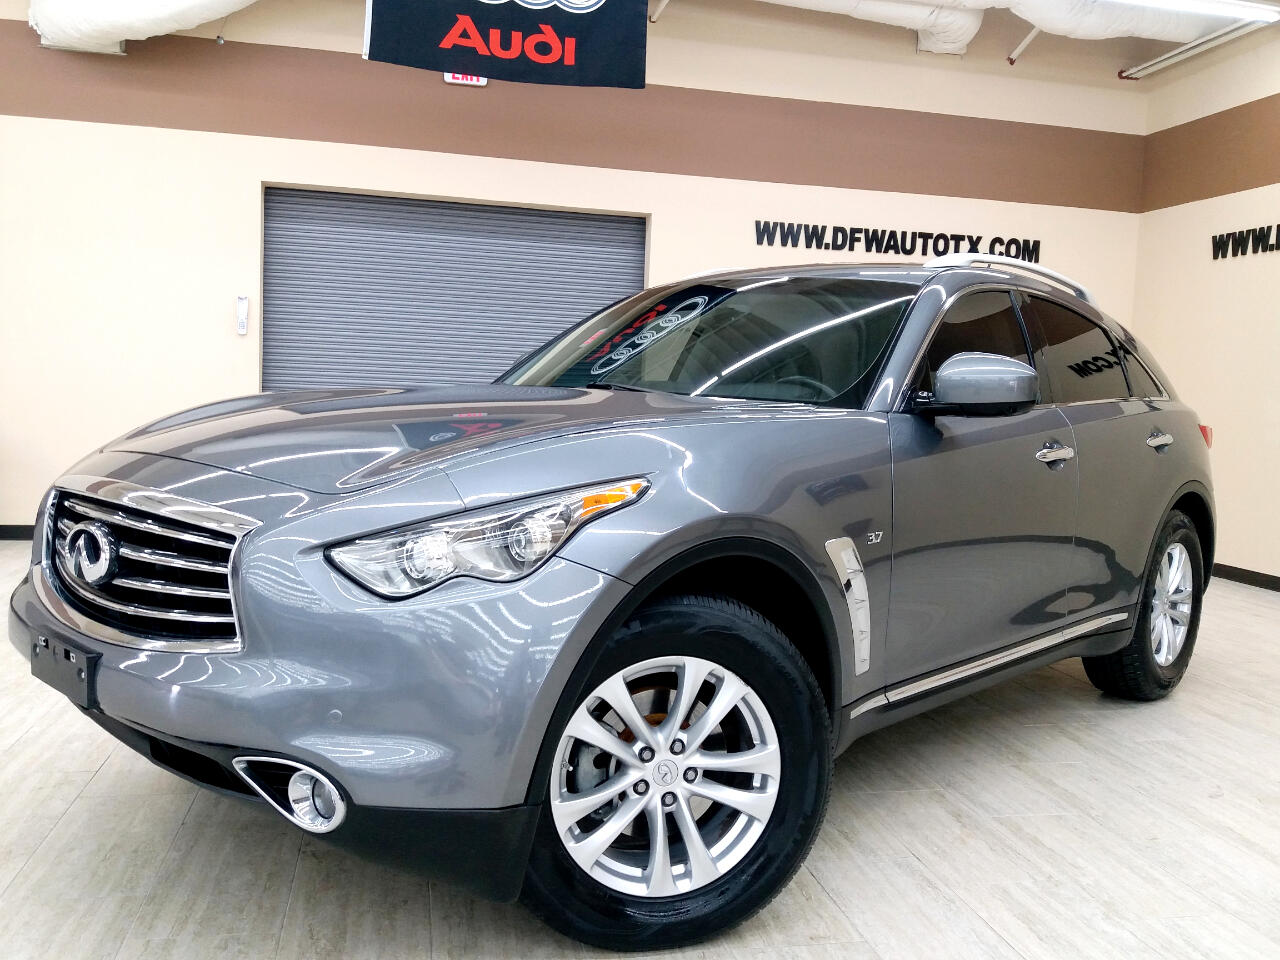 2016 Infiniti QX70 3.7L Luxury